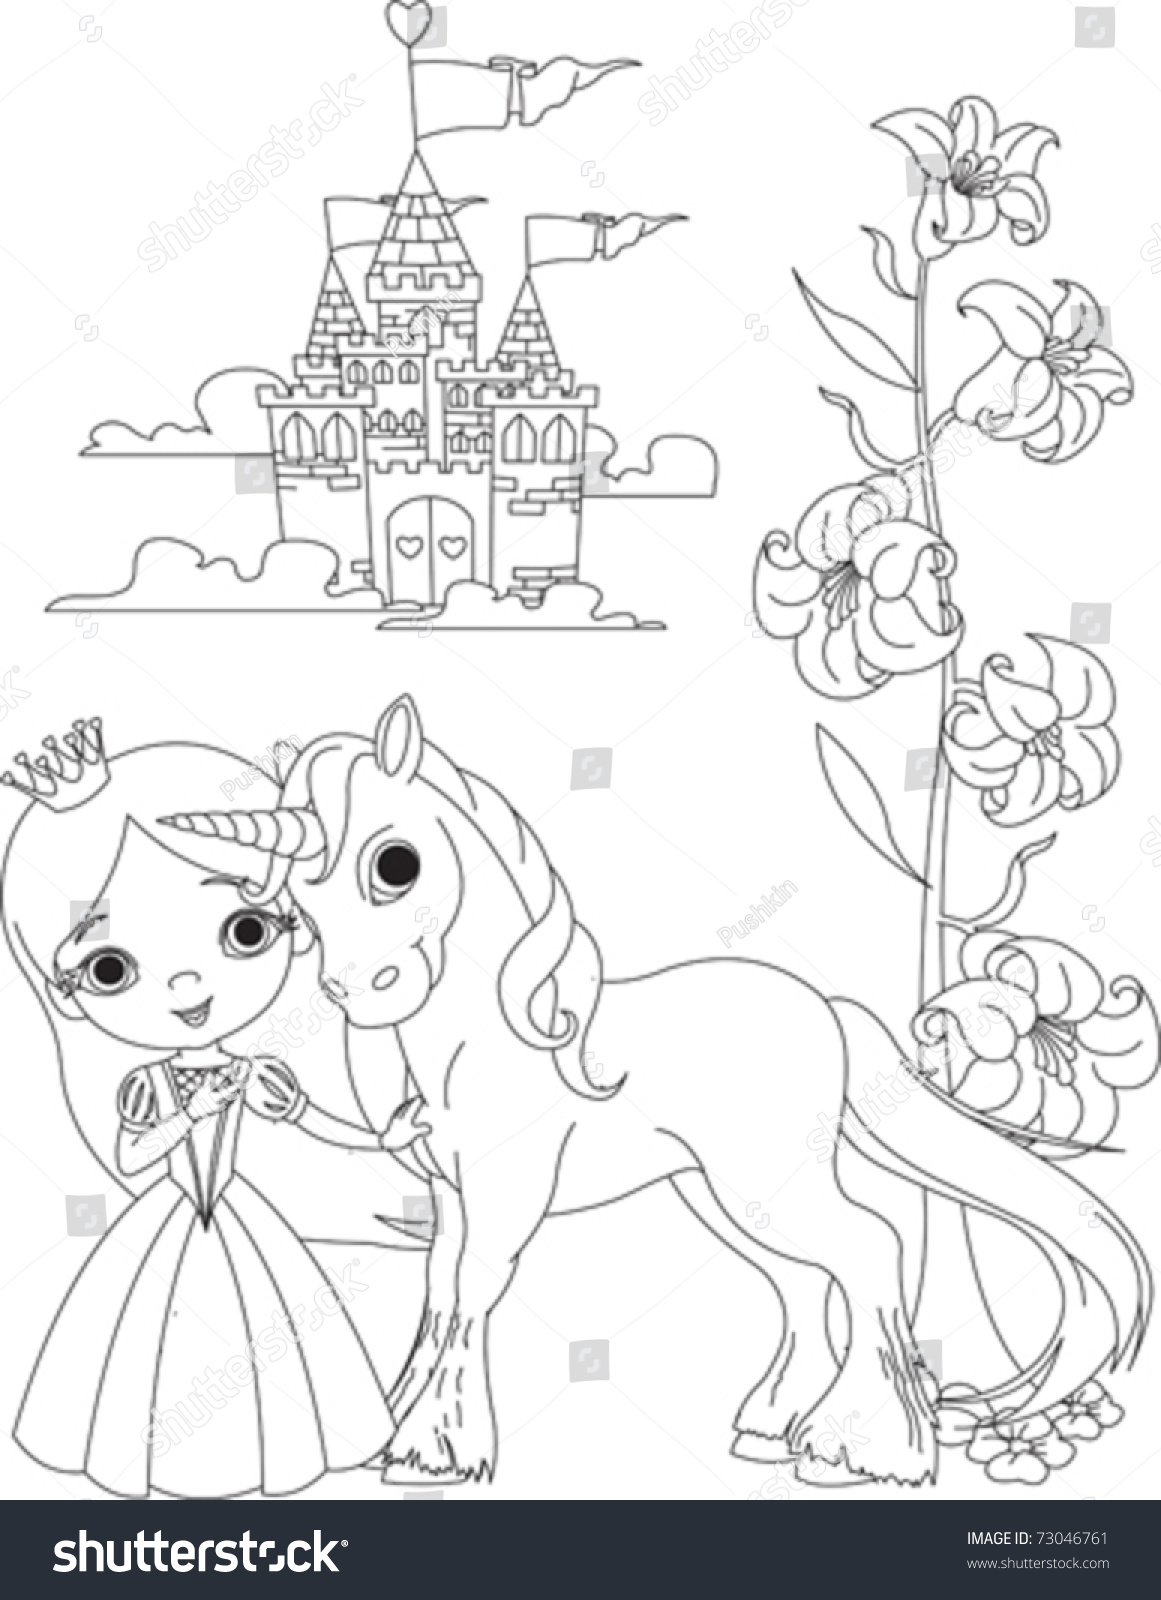 Unicorn Coloring Printable Party Favor Princess Coloring Princess And Unicorn Coloring Pages Printable